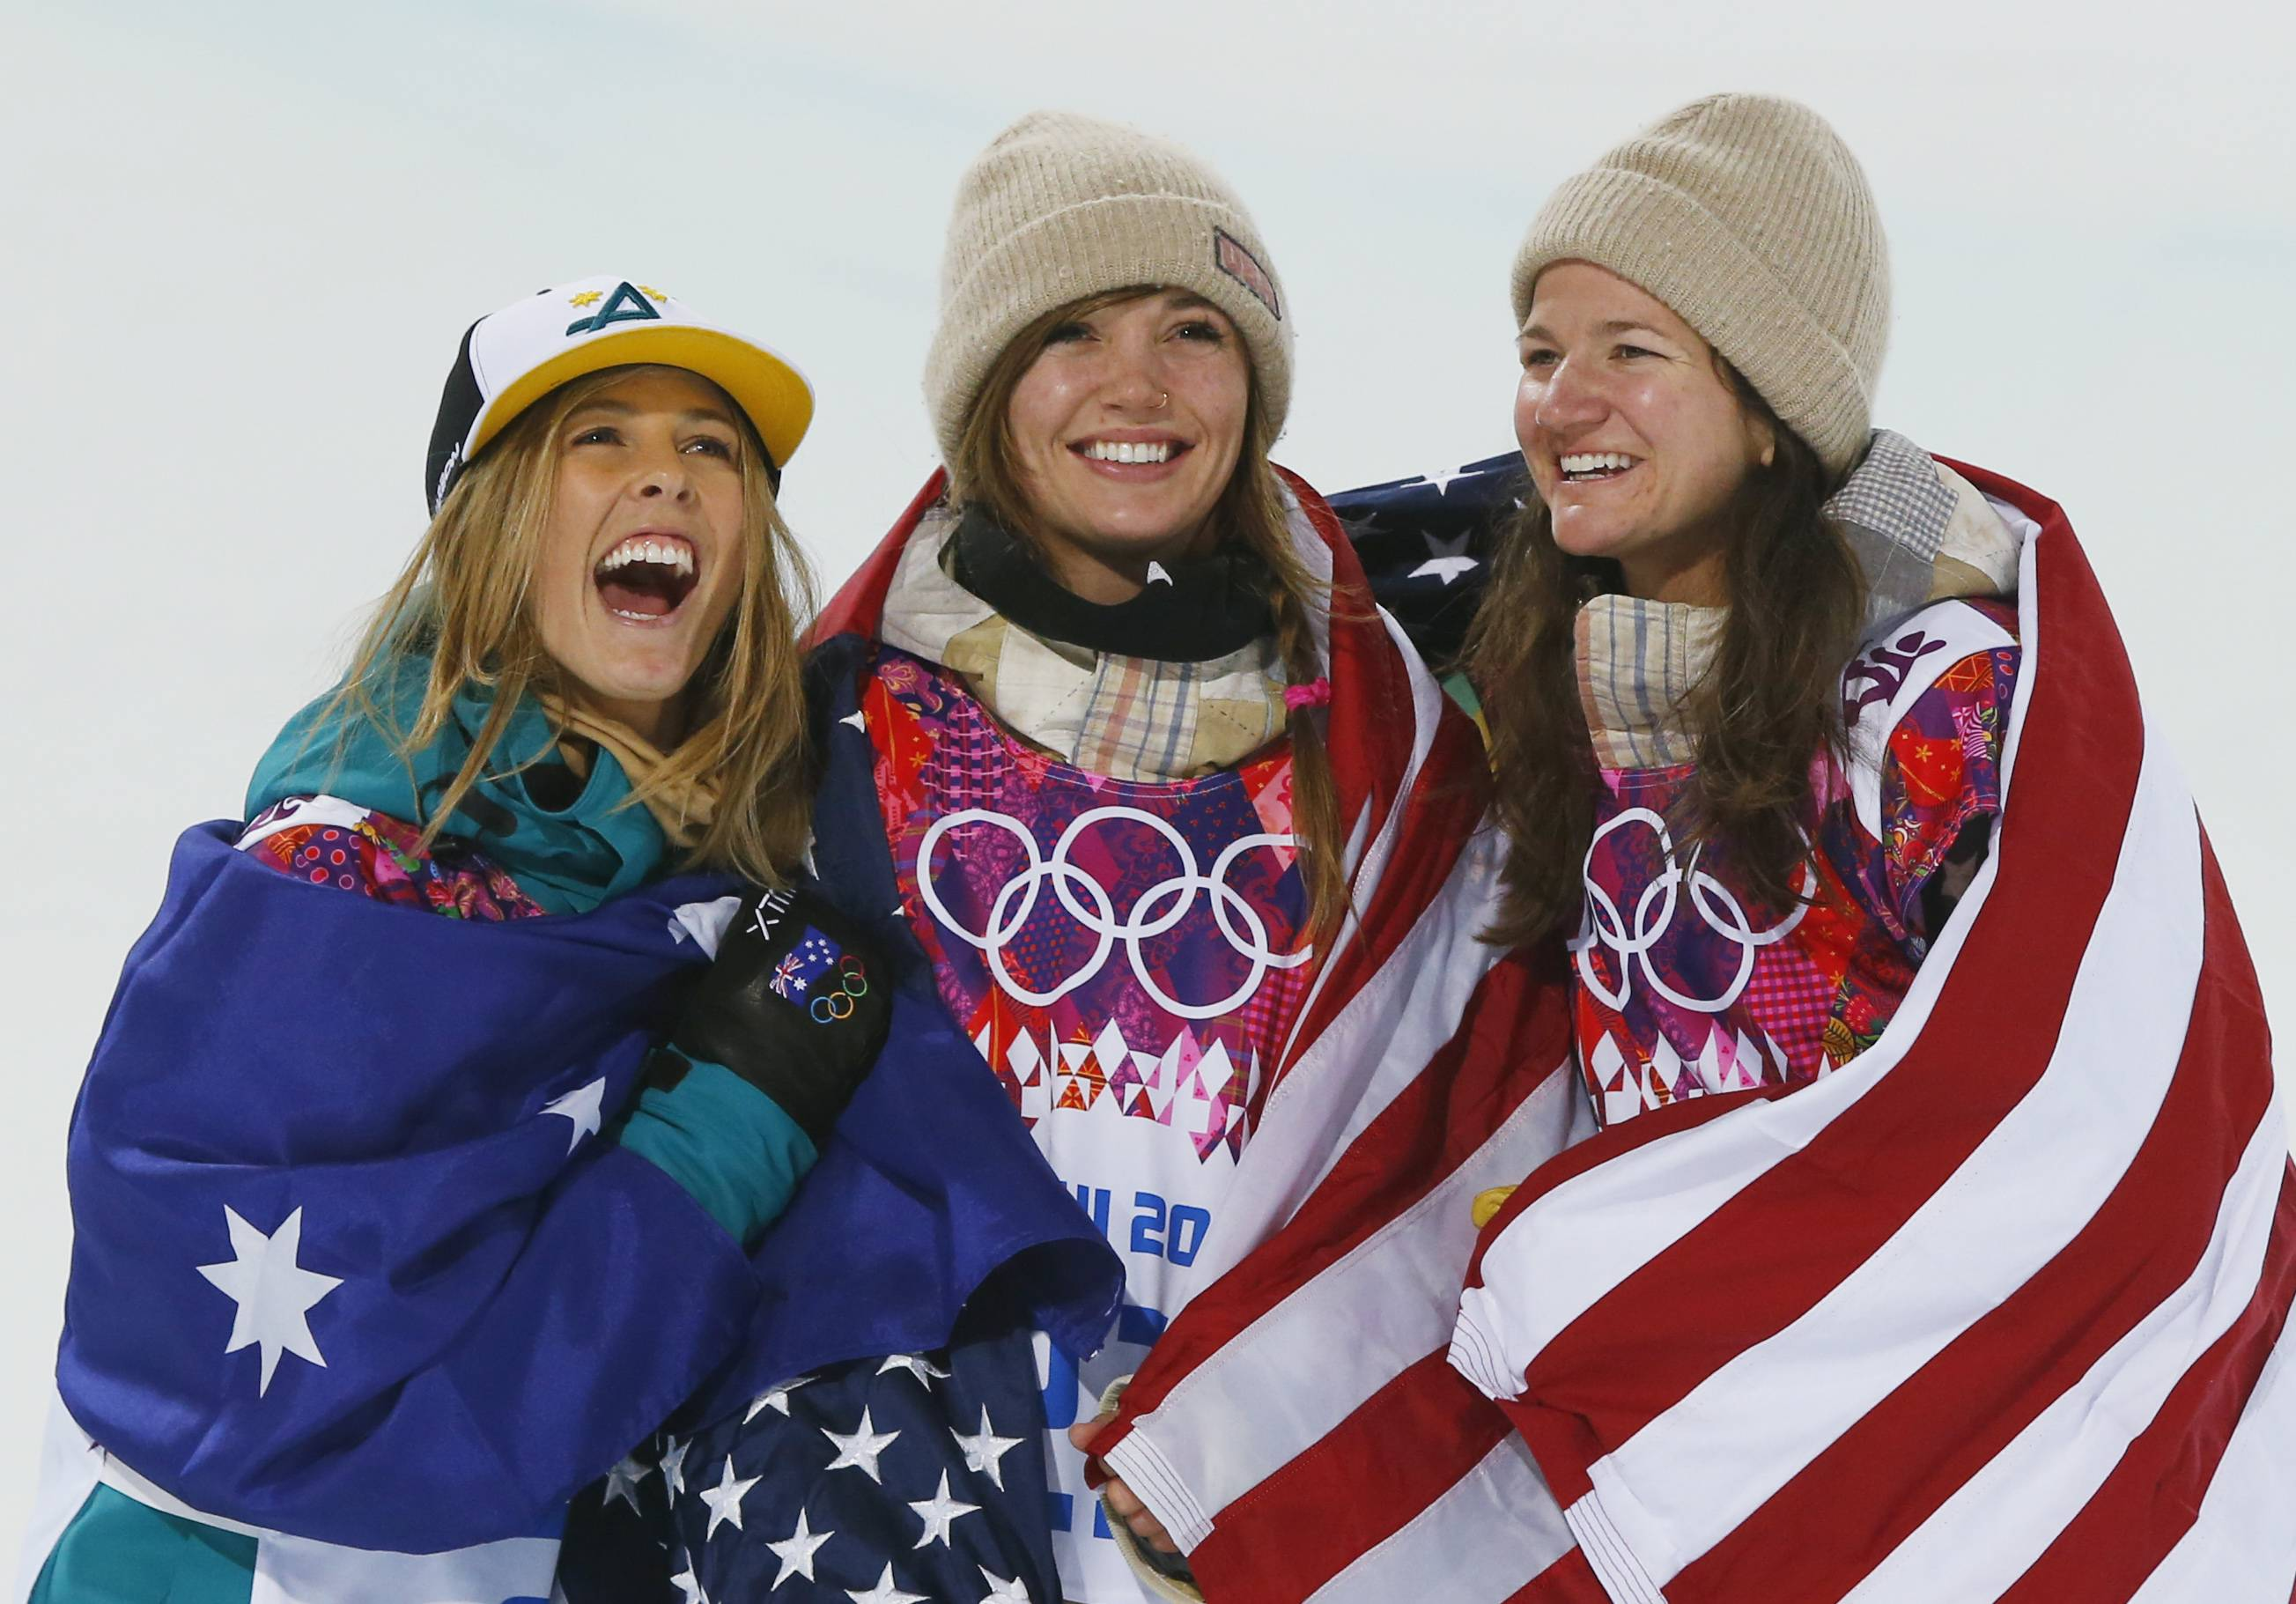 From left, silver medalist Australia's Torah Bright, gold medalist United States' Kaitlyn Farrington and bronze medalist United States' Kelly Clark pose following the women's snowboard halfpipe at the Rosa Khutor Extreme Park, at the 2014 Winter Olympics, Wednesday, Feb. 12, 2014, in Krasnaya Polyana, Russia.